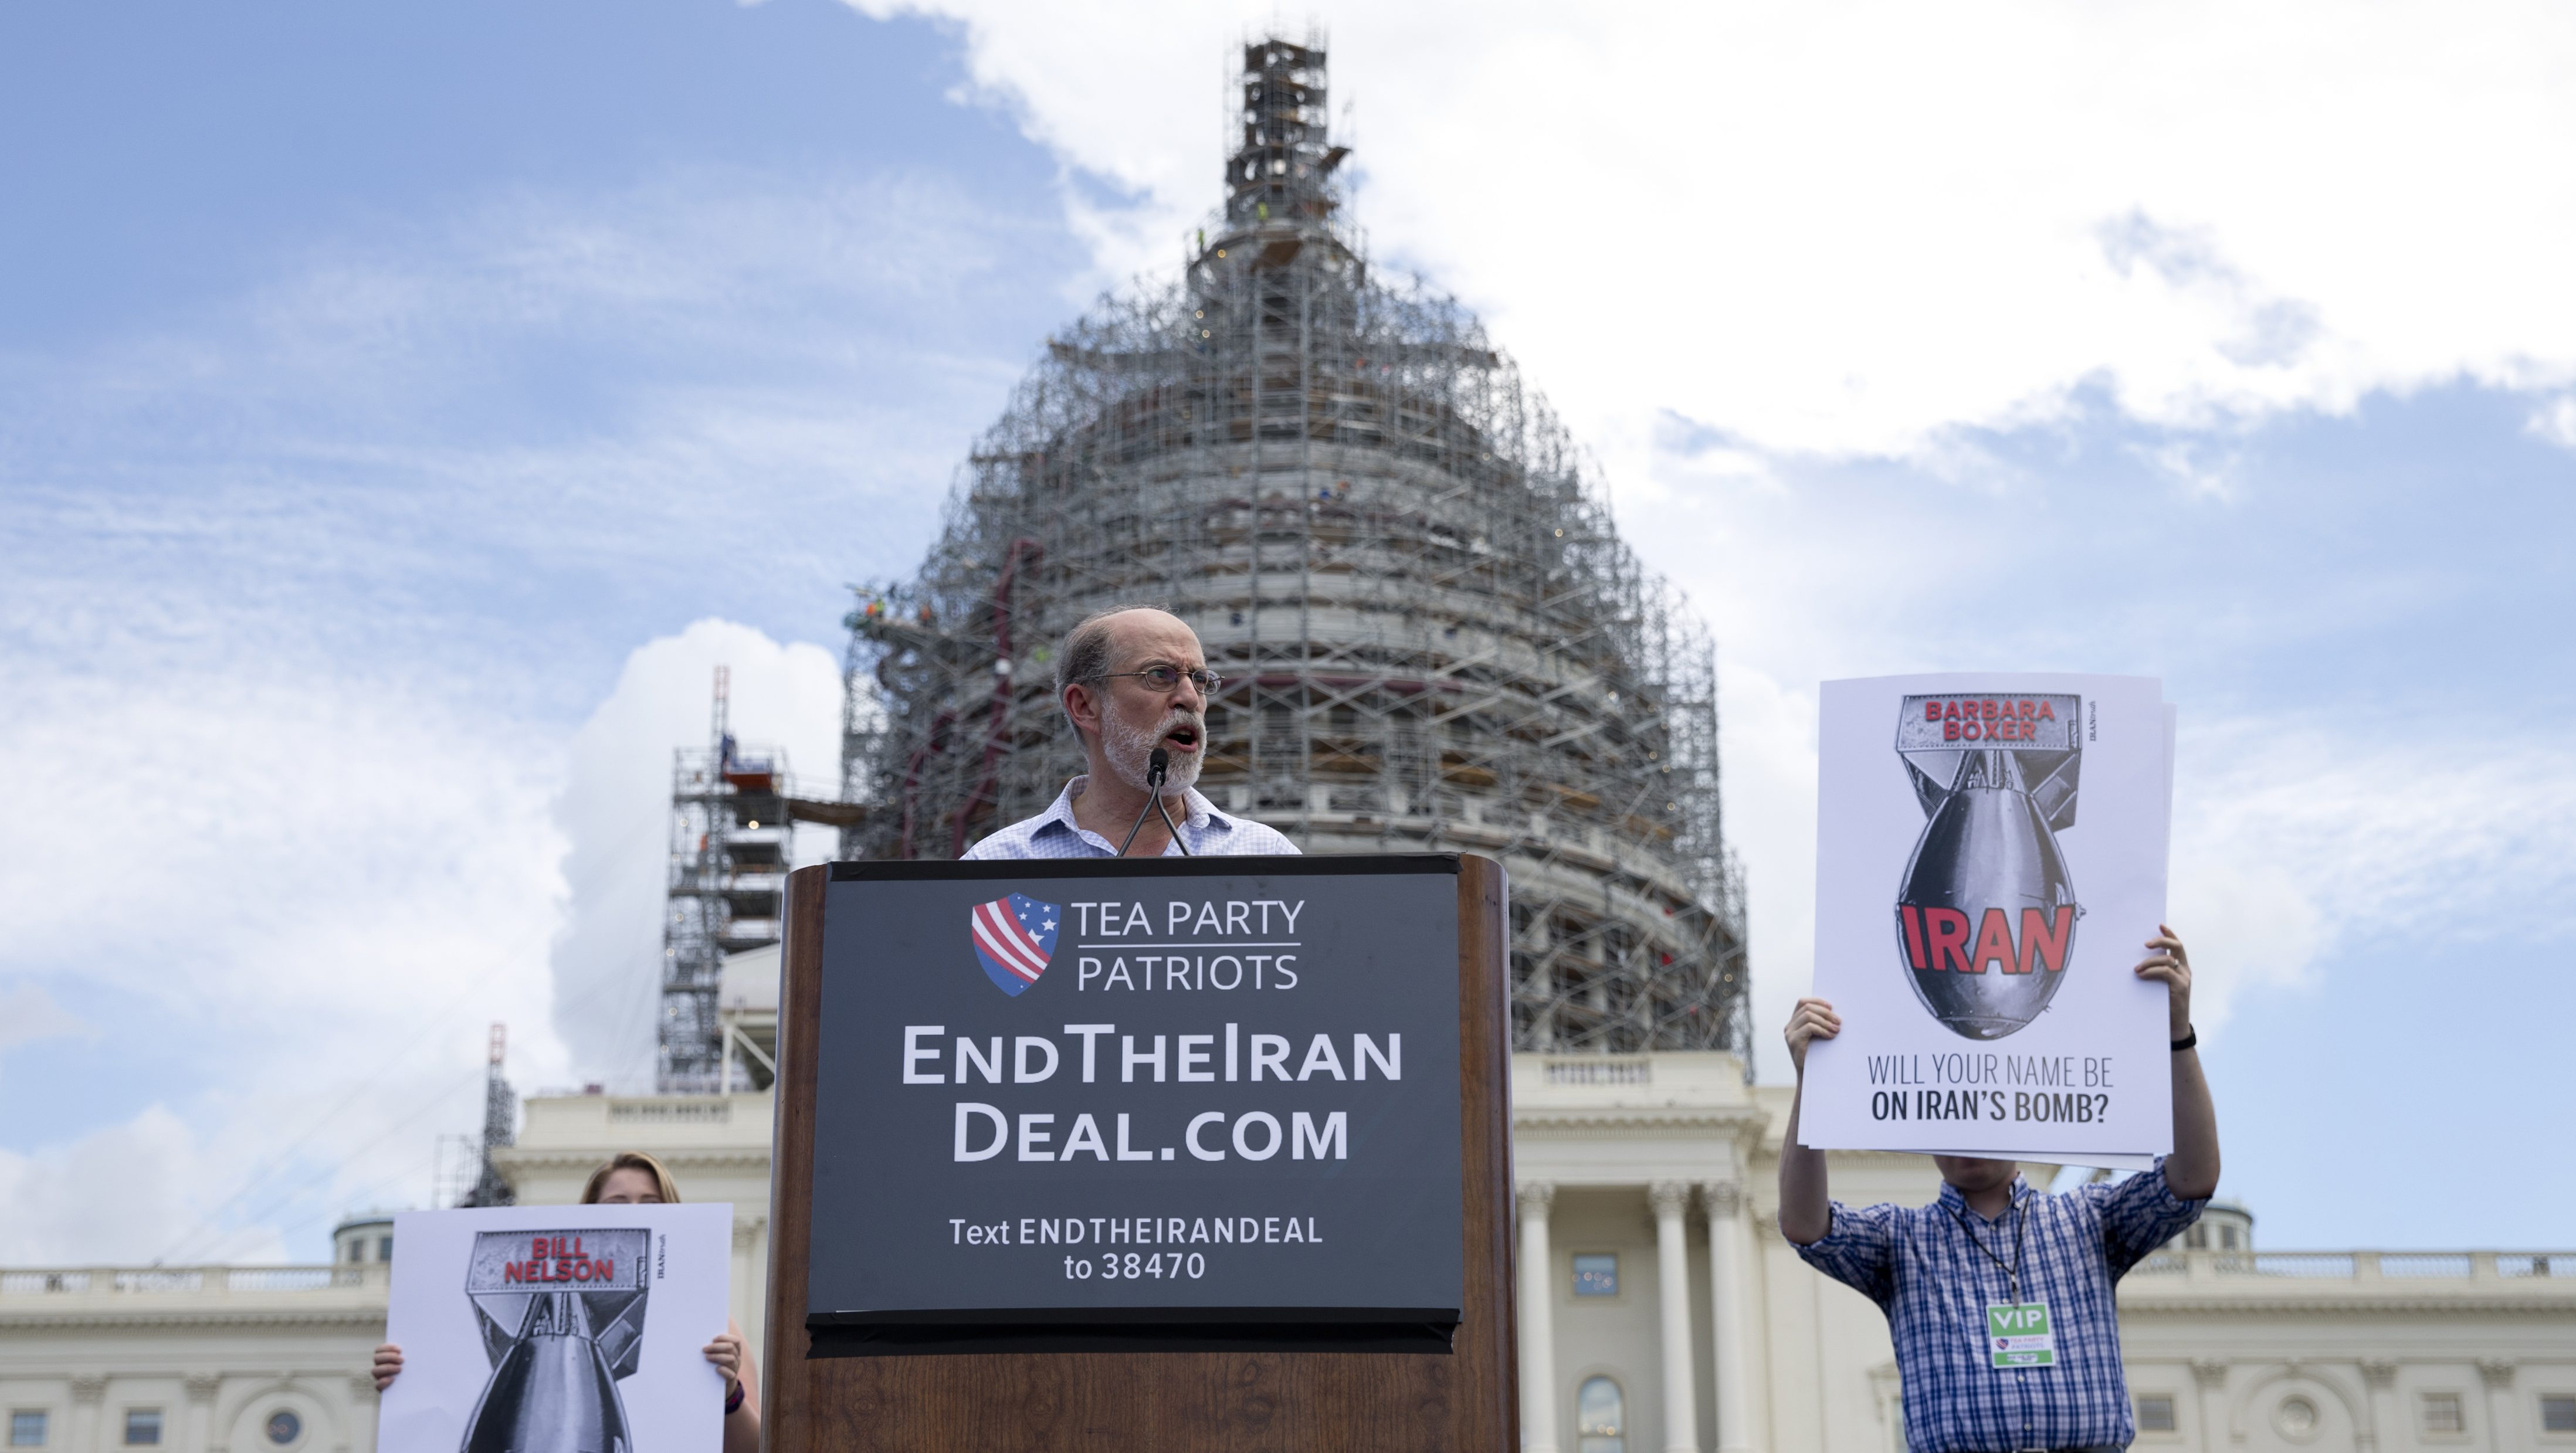 Frank Gaffney, founder and CEO of the Center for Security Policy, speaks during a rally organized by Tea Party Patriots in on Capitol Hill in Washington, Wednesday, Sept. 9, 2015, to oppose the Iran nuclear agreement. (AP Photo/Carolyn Kaster)